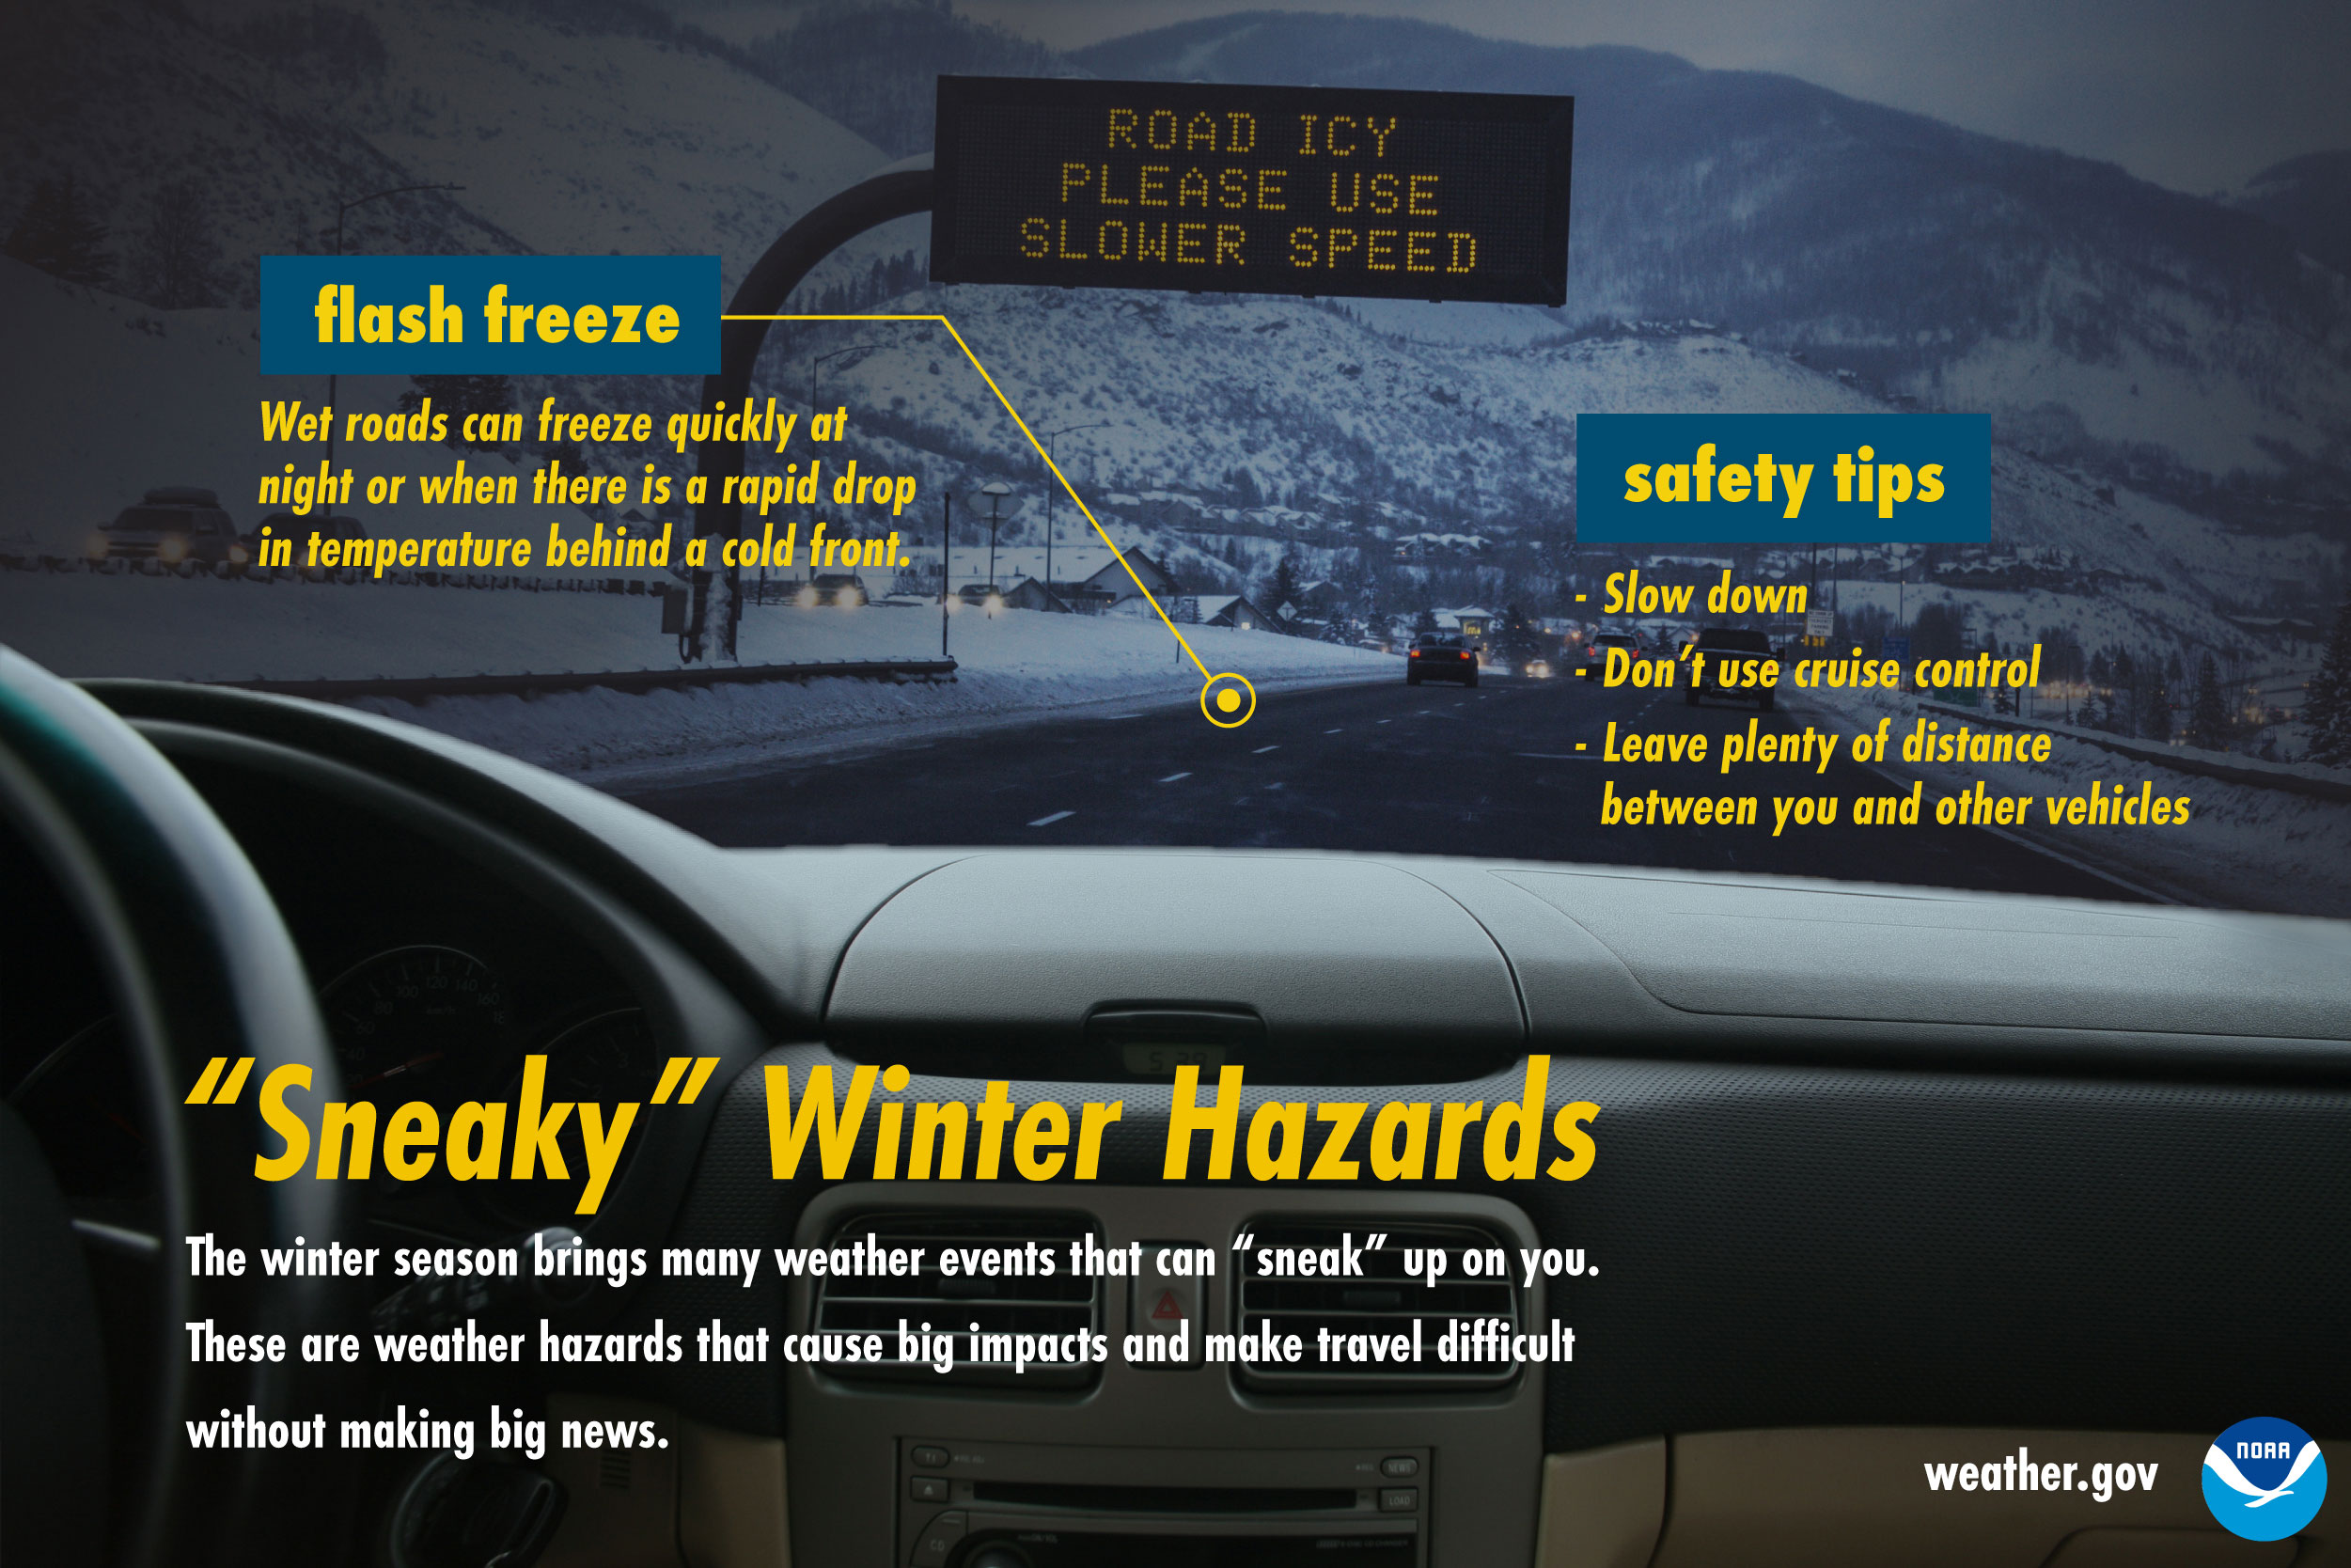 Sneaky Winter Hazards: Flash freeze